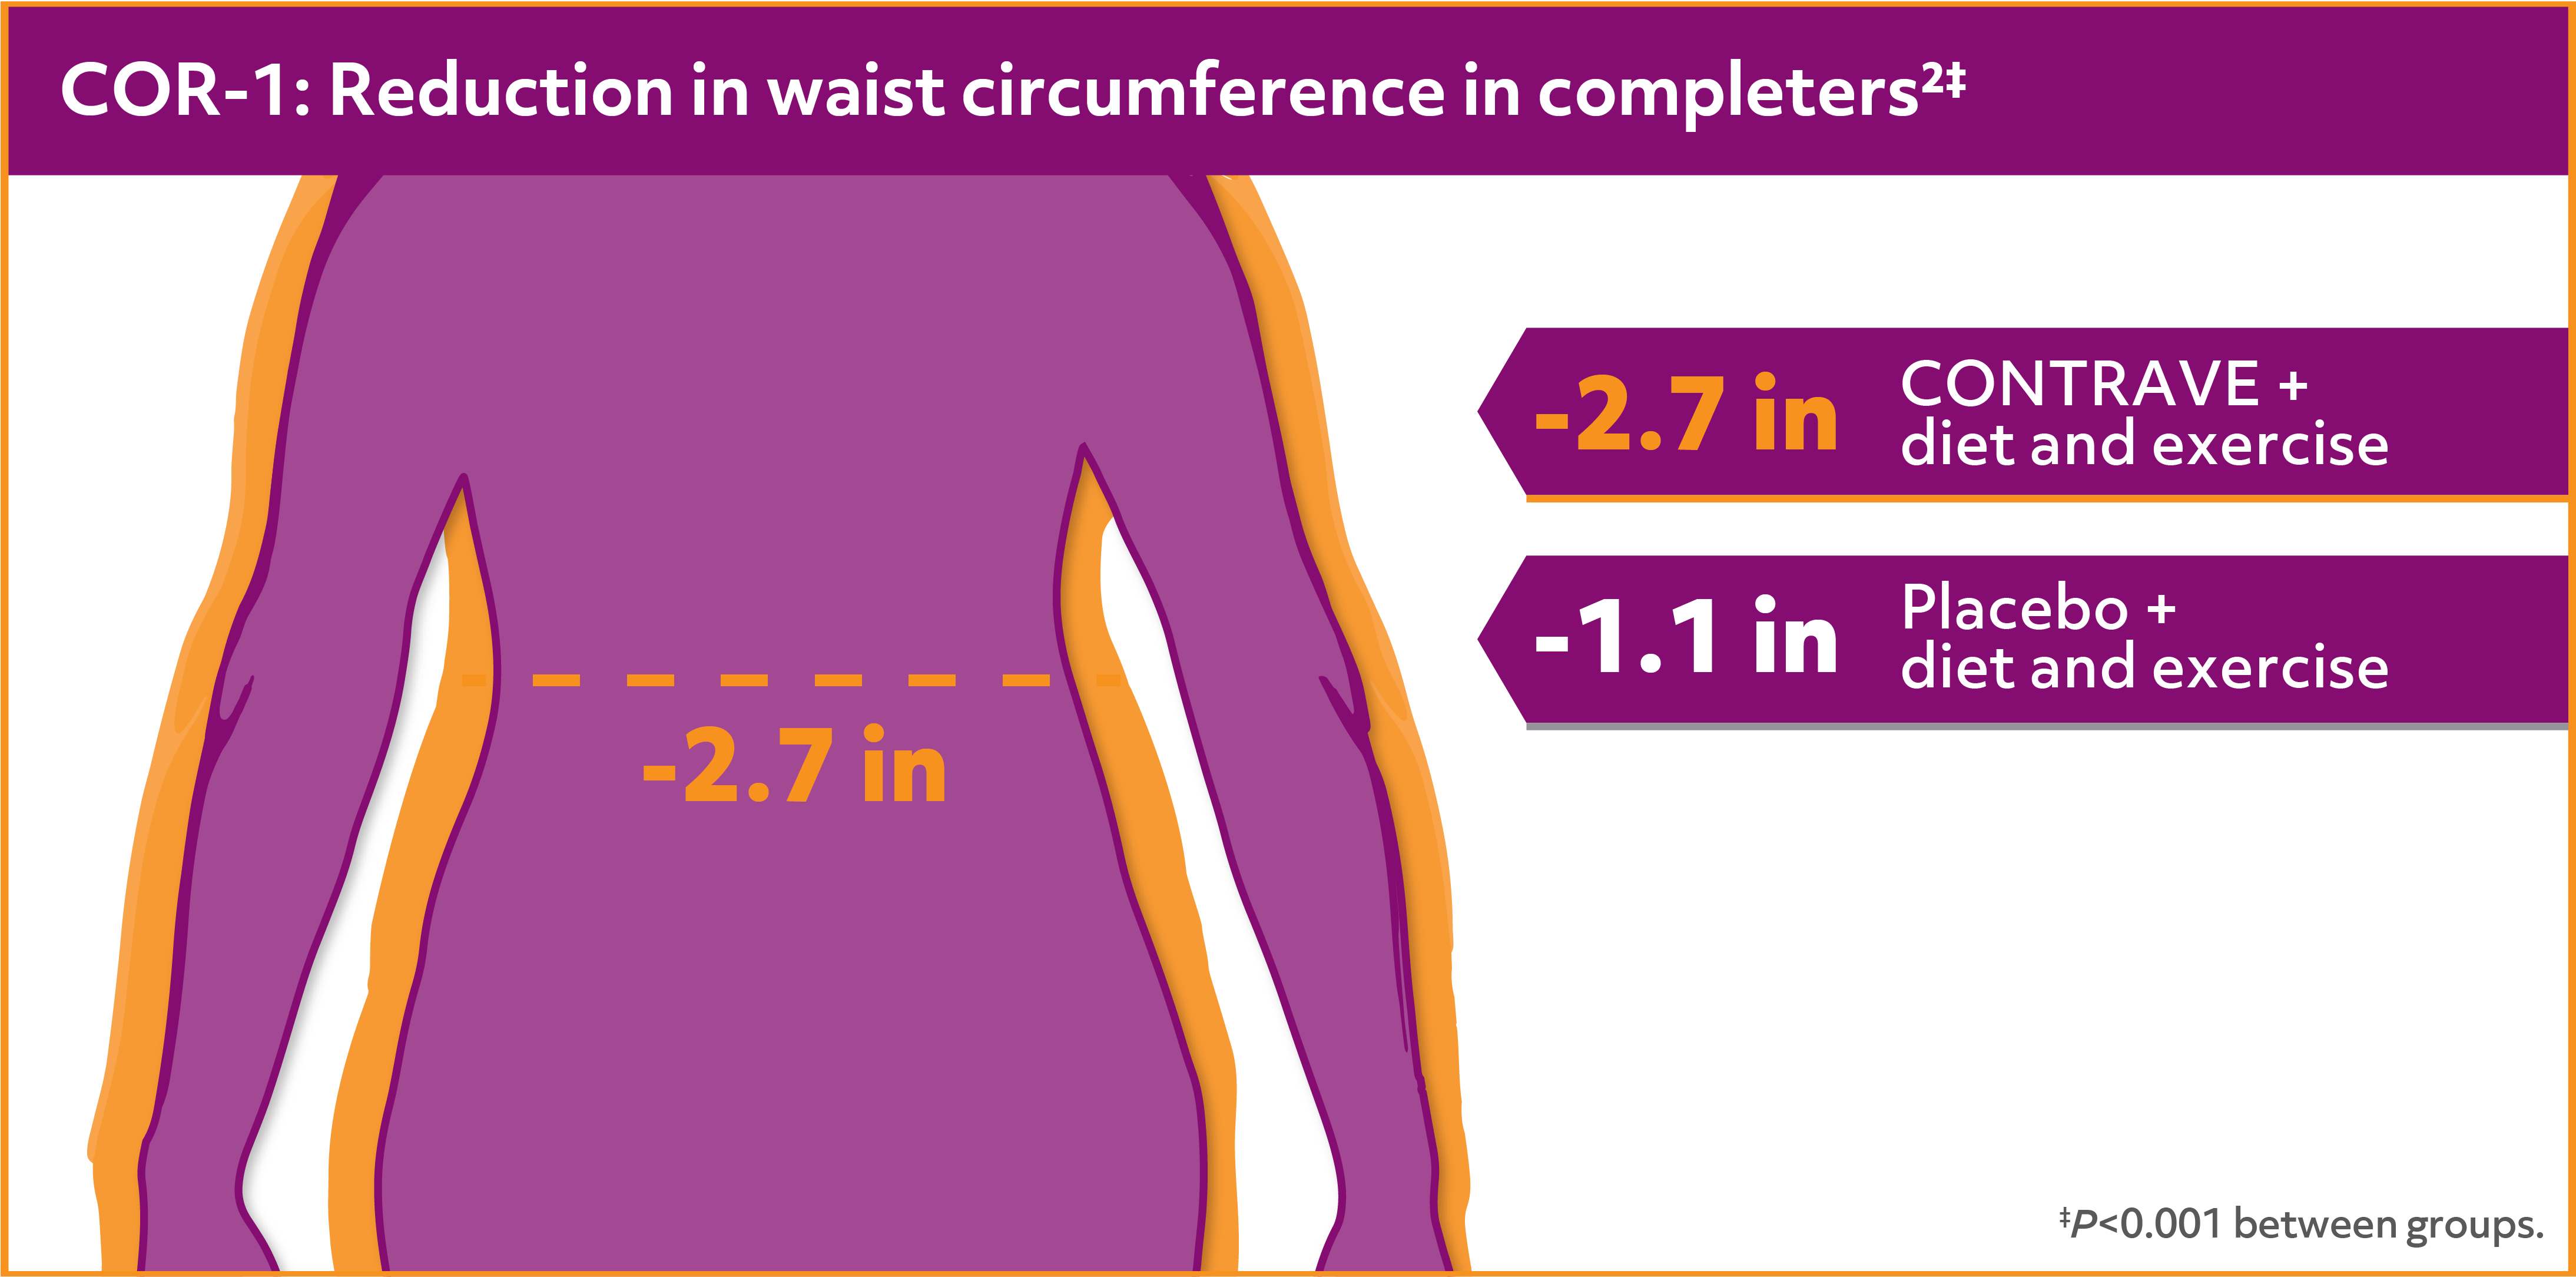 Reduction in waist circumference with CONTRAVE + diet and exercise